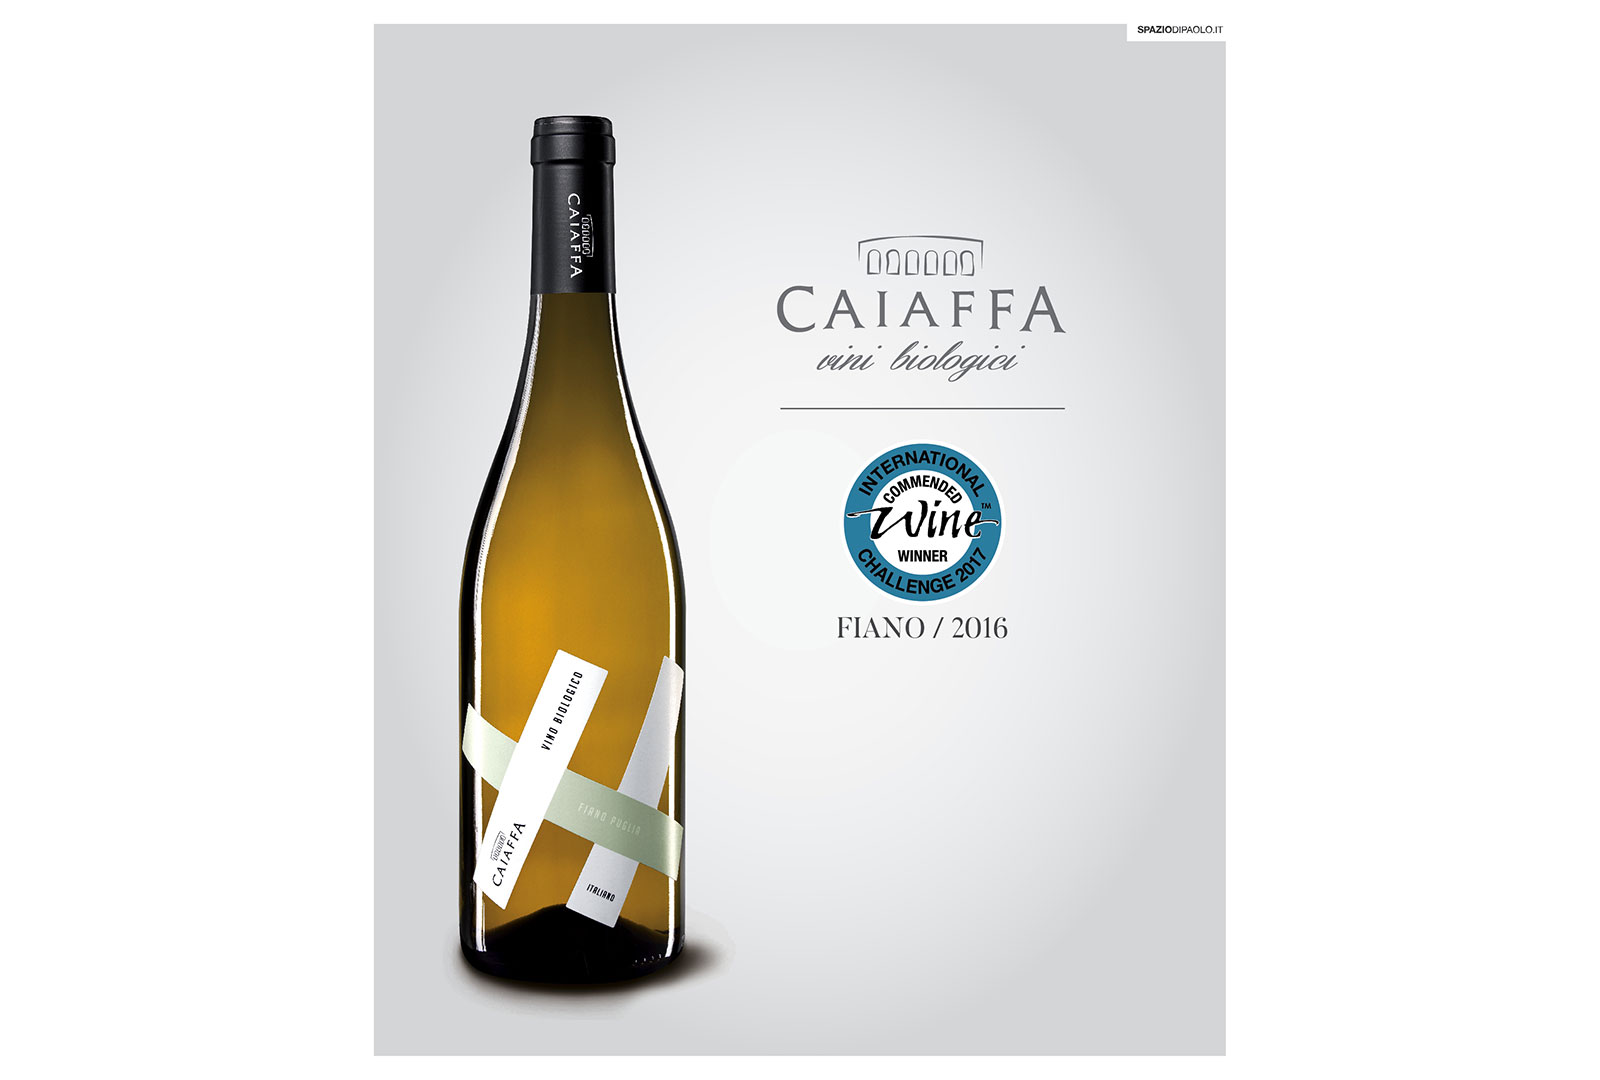 international-wine-challenge-fiano-winner